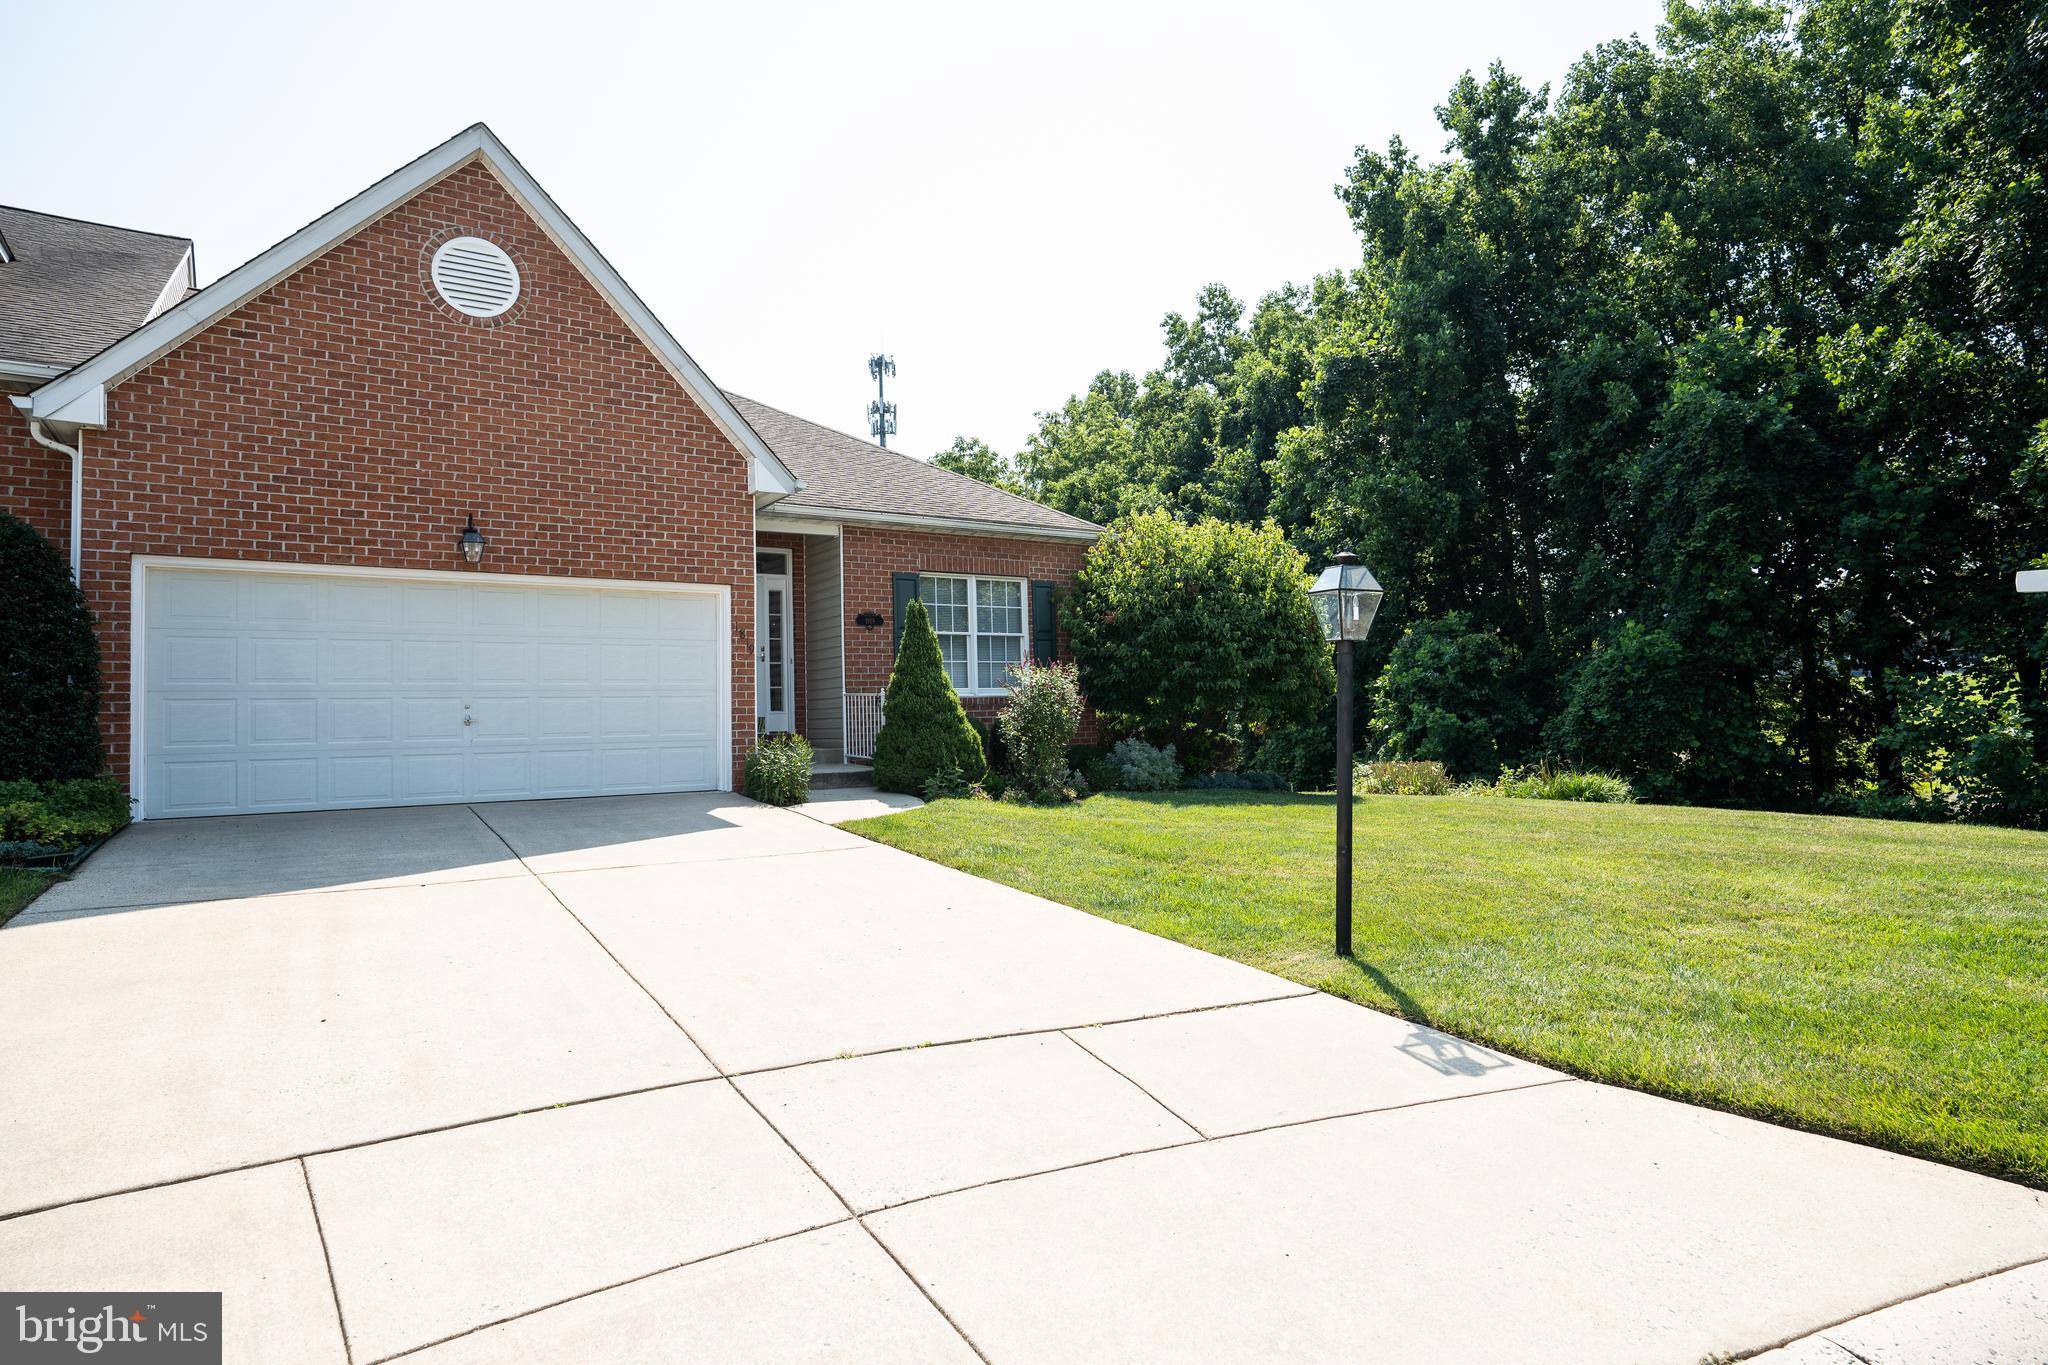 Pristine 3 bedroom 3 bath home located in Barrington. Home features a two-car garage with a gas fire